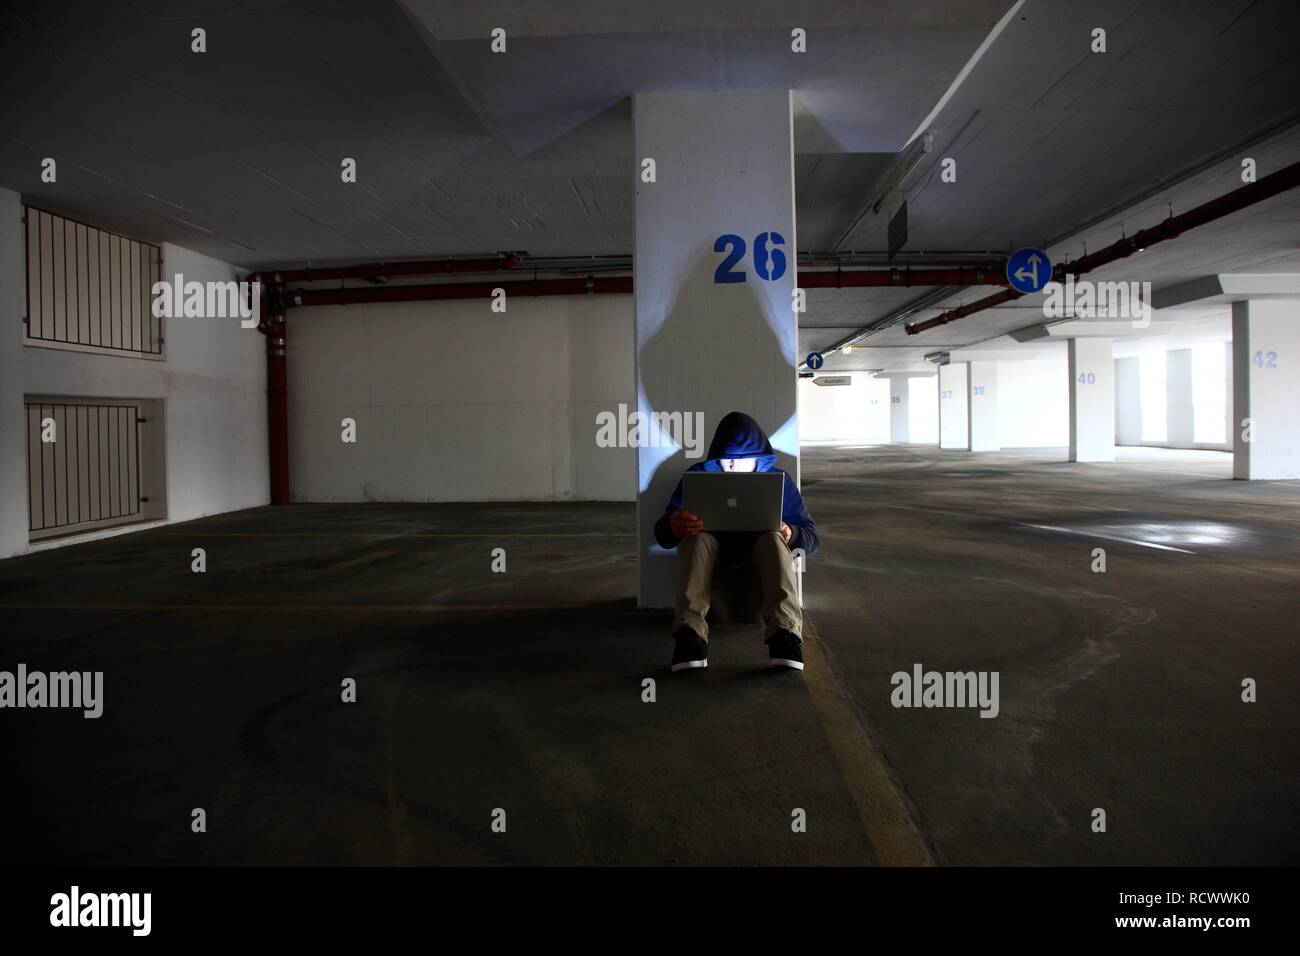 Man surfing on a laptop computer in an empty multi-storey car park, symbolic image for computer hacking, computer crime - Stock Image